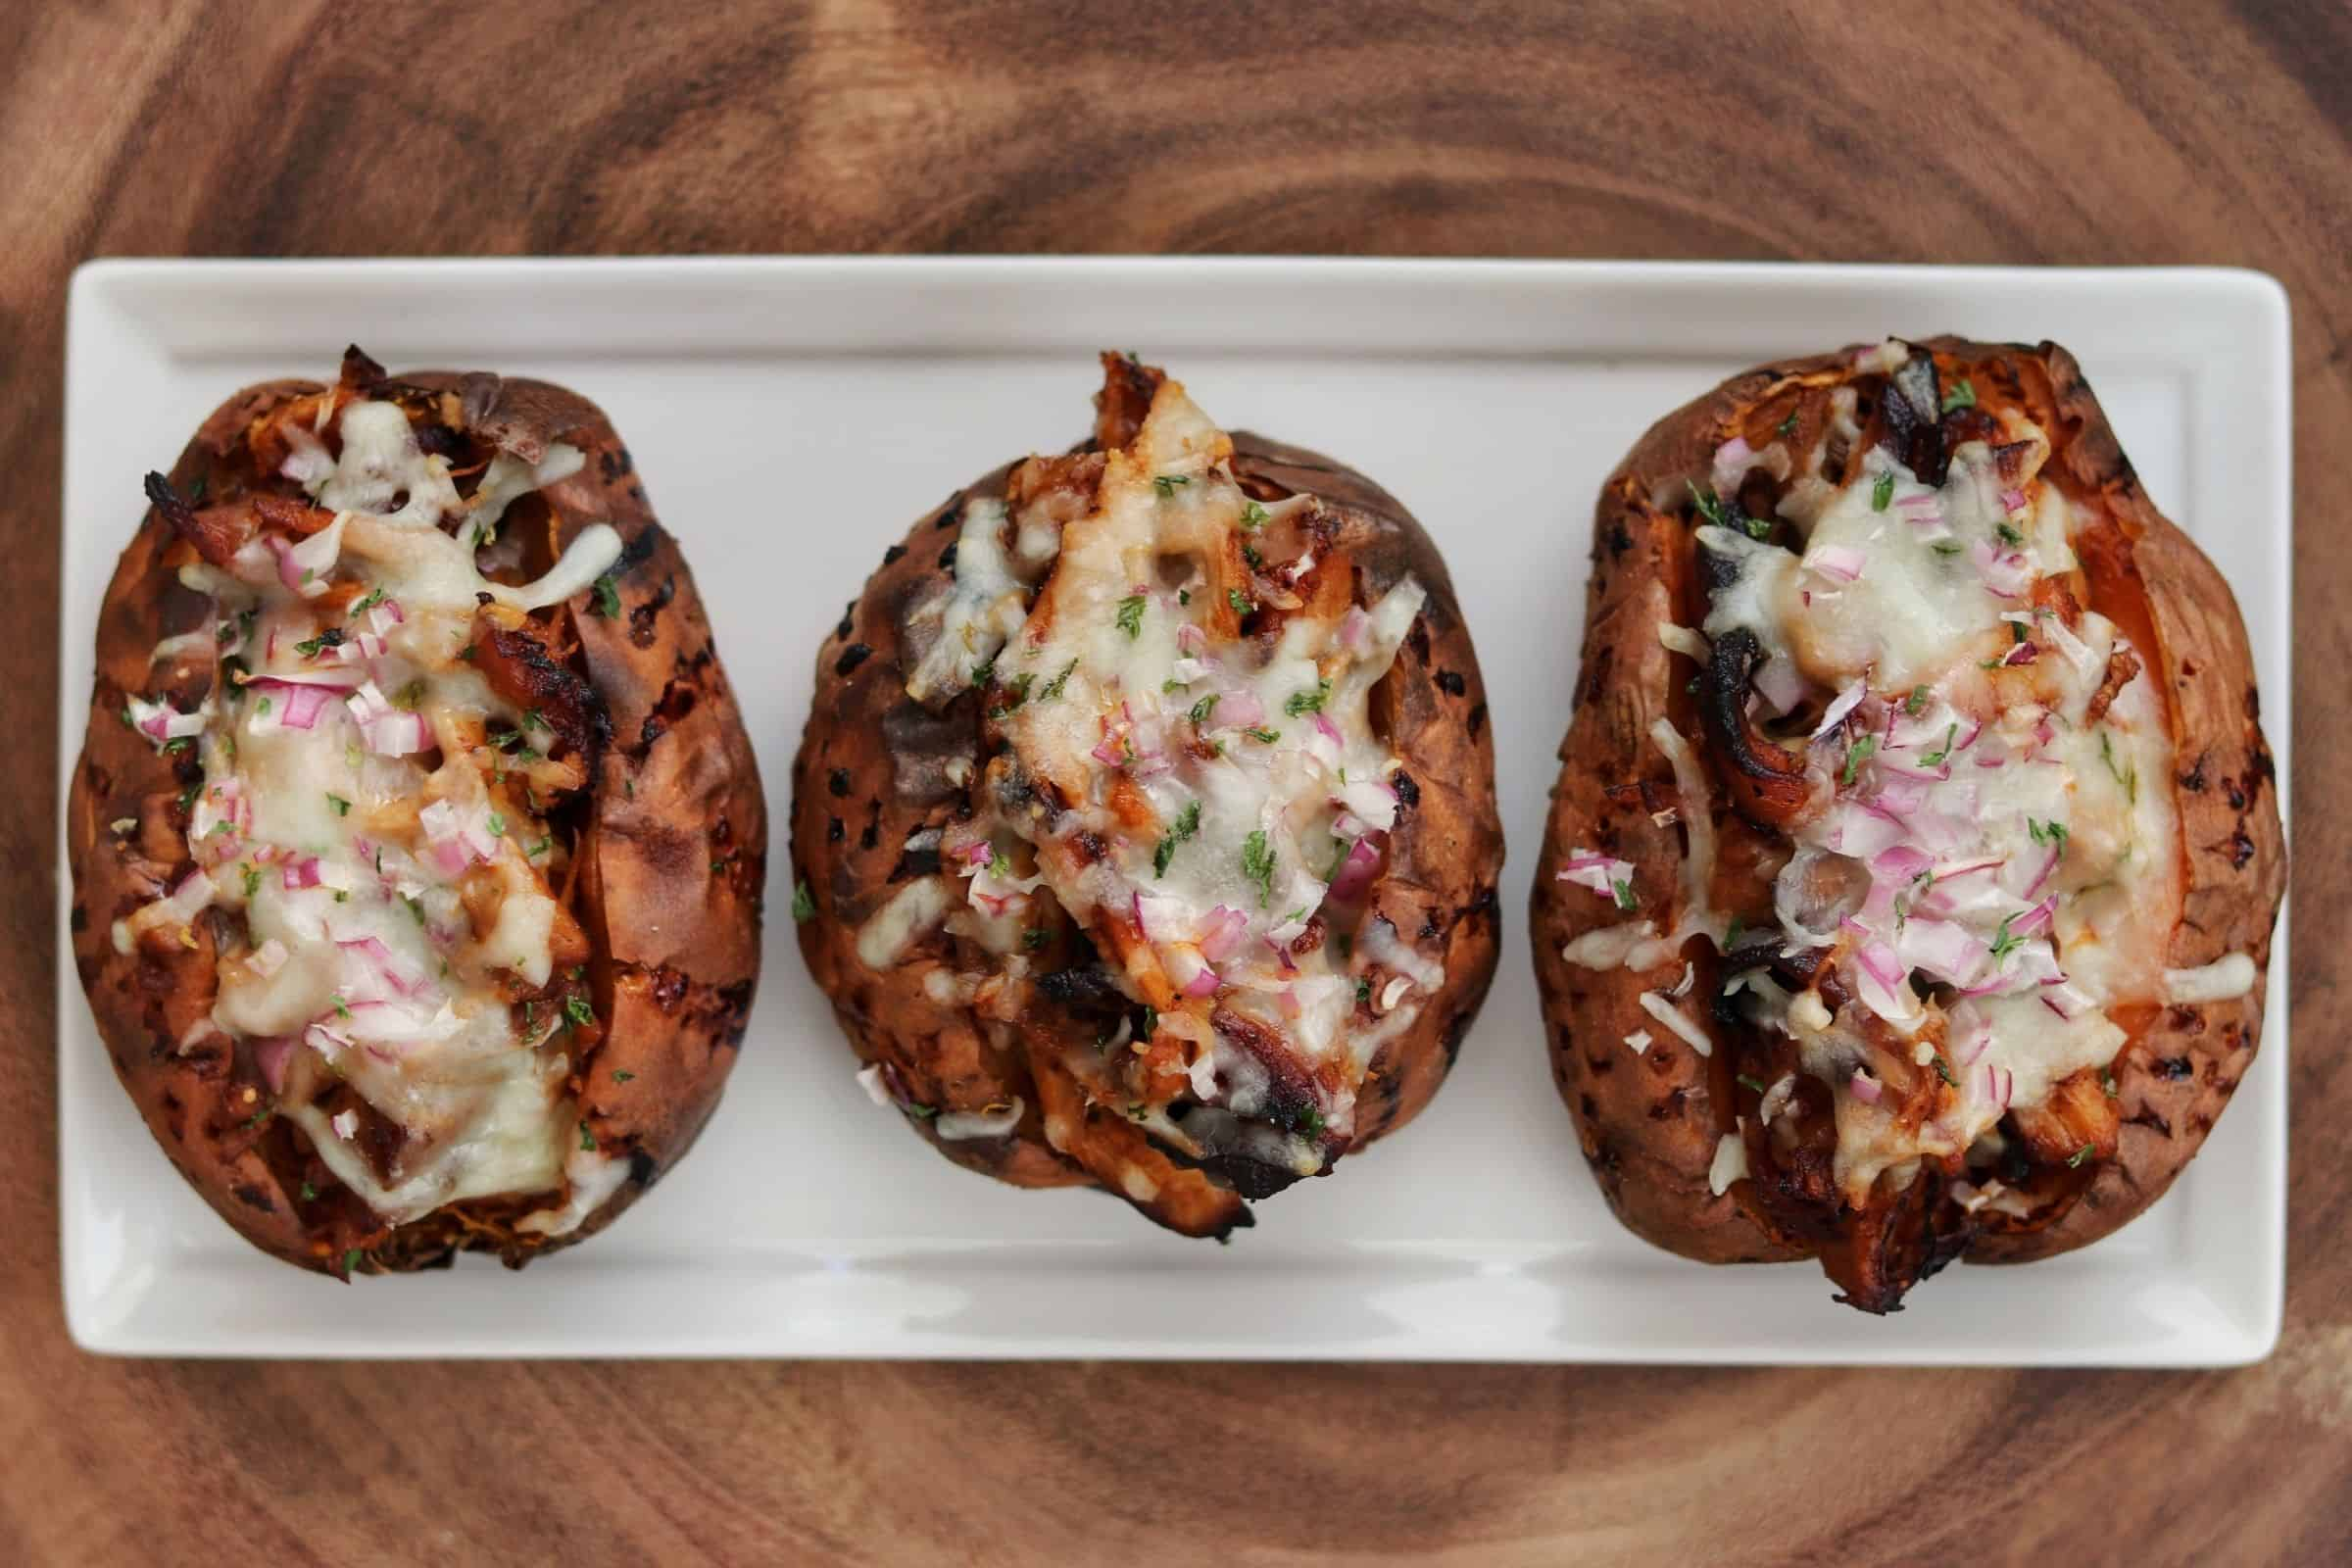 3 bbq chicken stuffed sweet potatoes on a plate